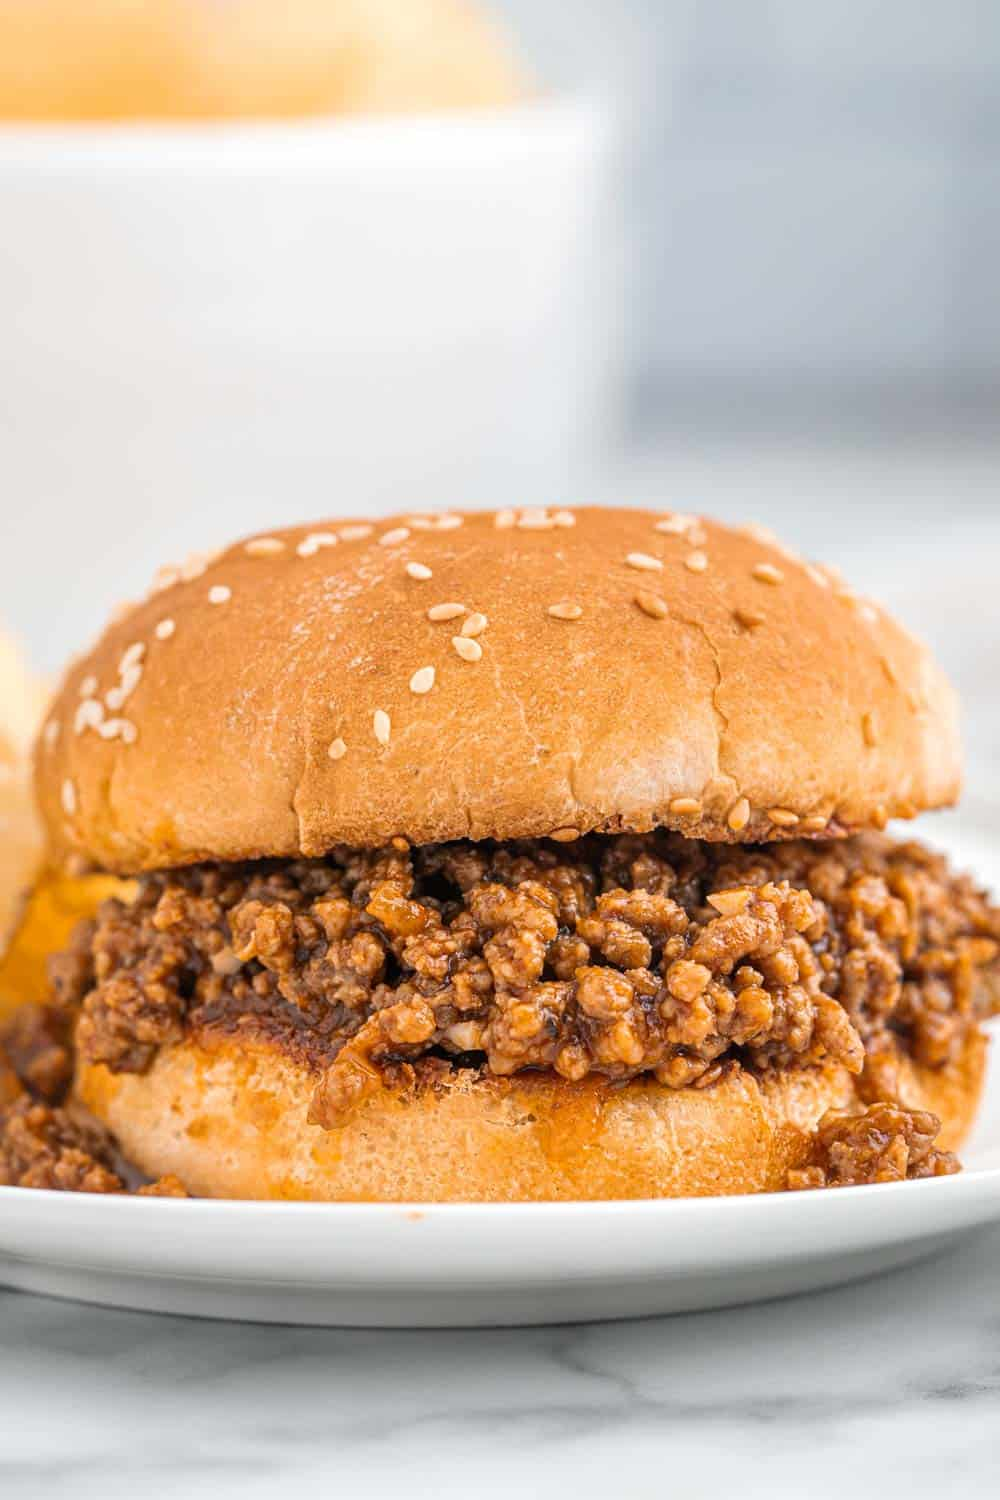 Sloppy joes roll on a white plate